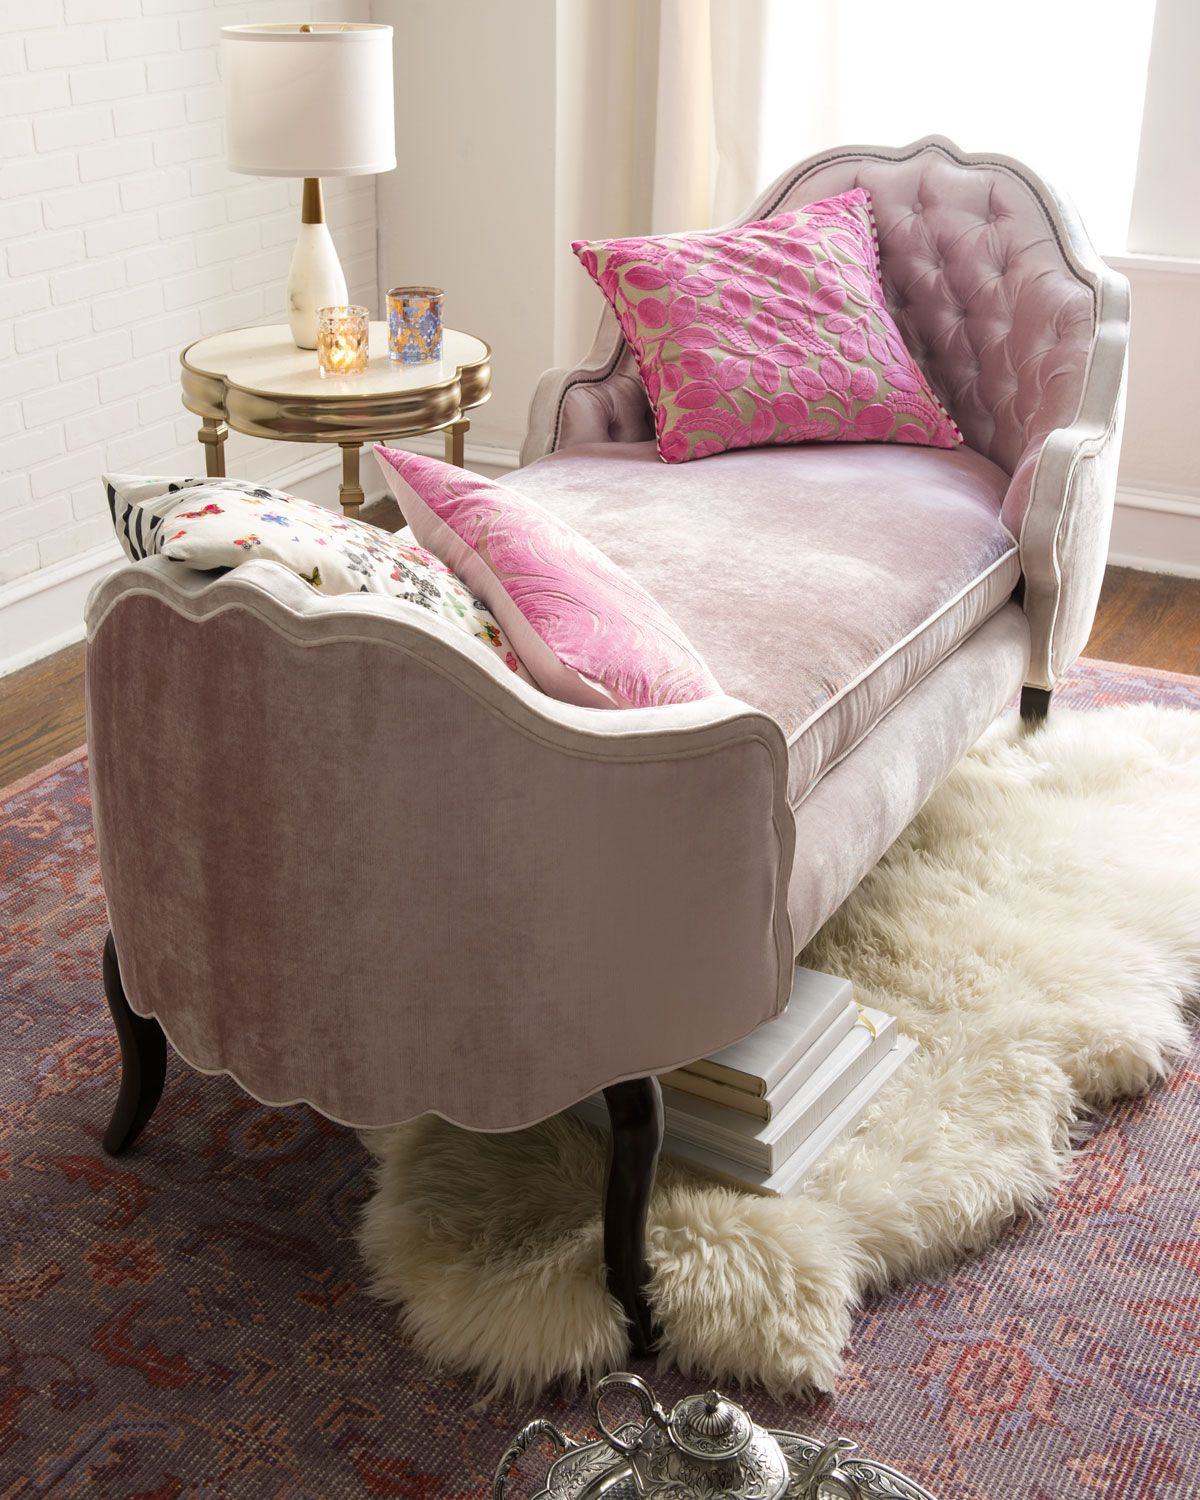 Bedroom Chair Pink Velvet Toddler Rocking Chairs Pippa Tufted Chaise House Bedrooms And Room